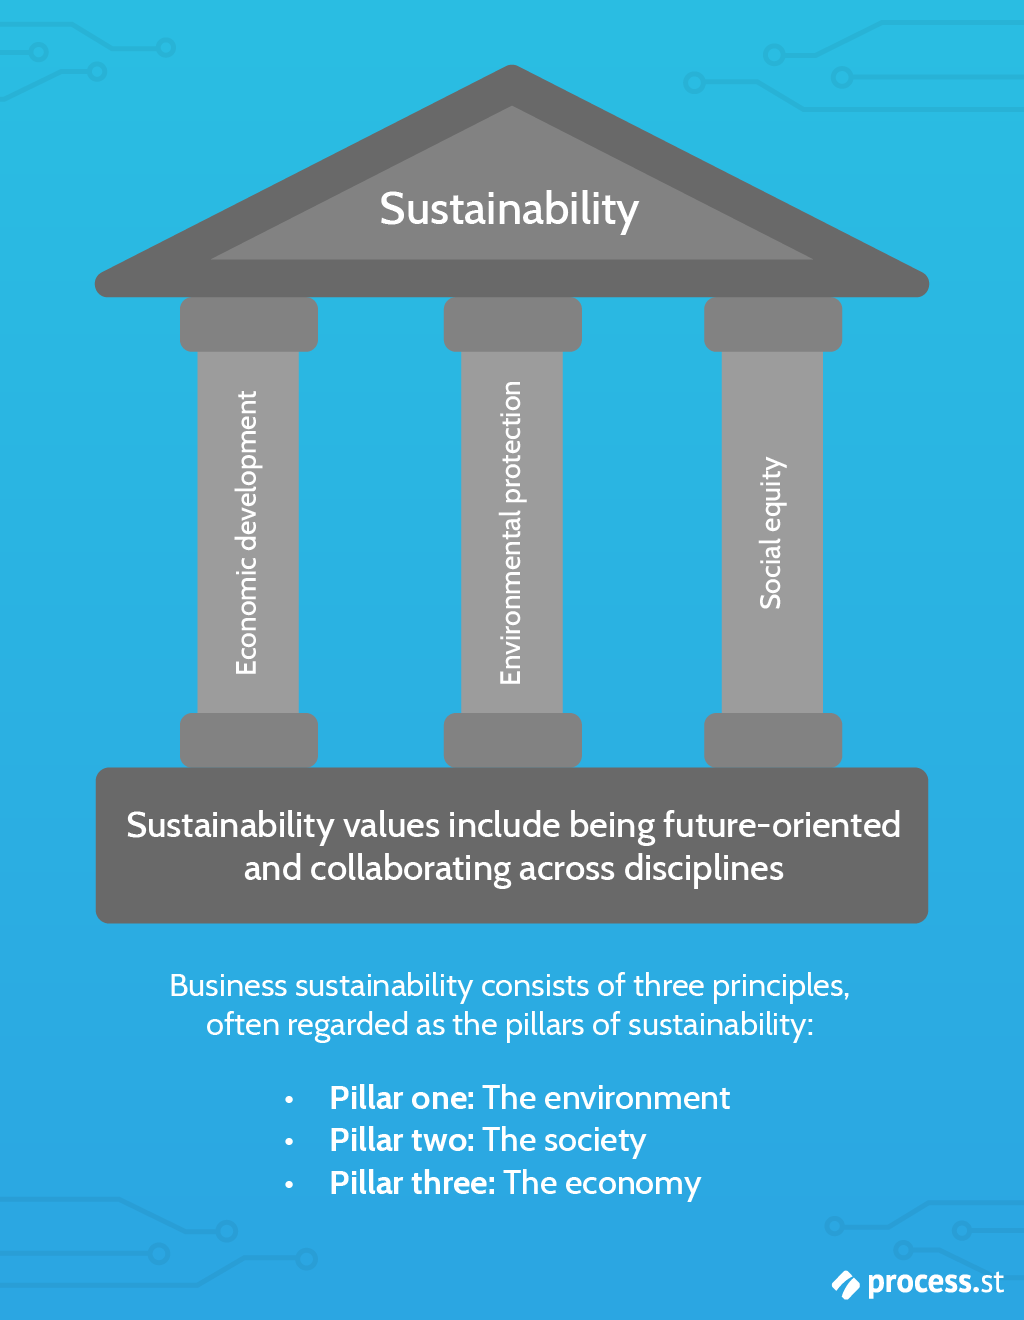 Sustainable business - the three pillars of sustainability